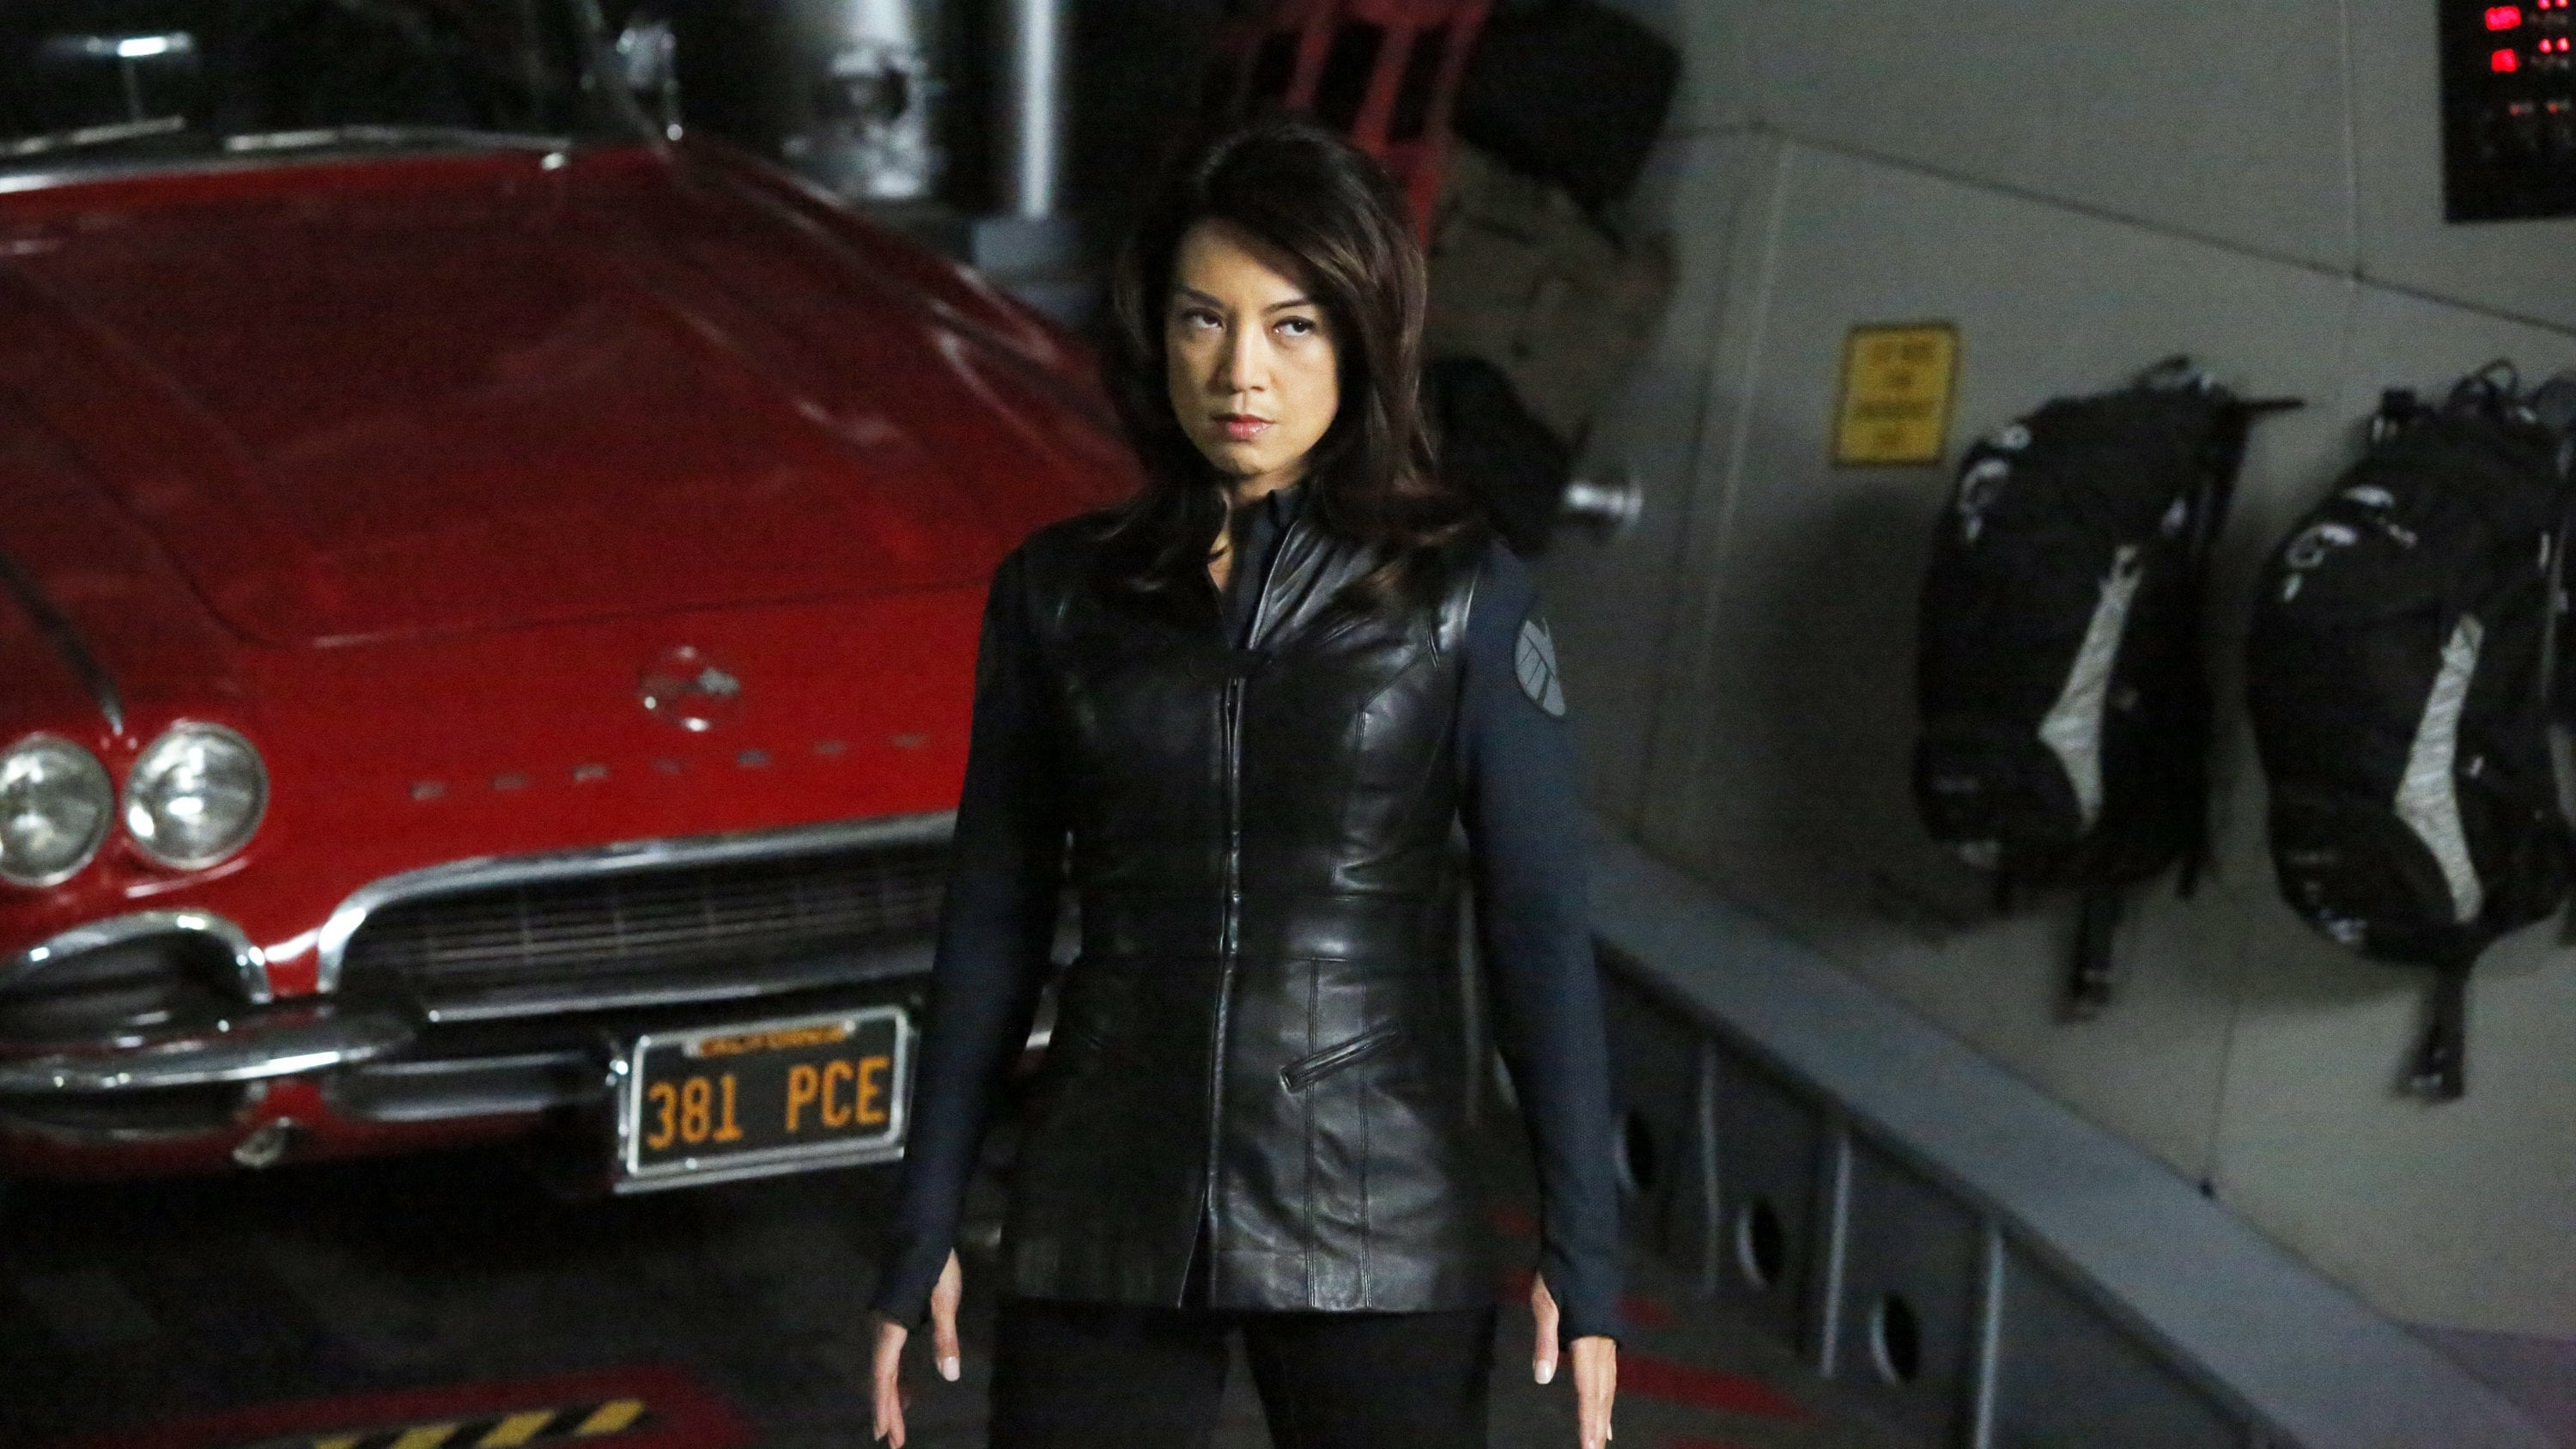 Marvel's Agents of S.H.I.E.L.D. - Season 1 Episode 17 : Turn, Turn, Turn